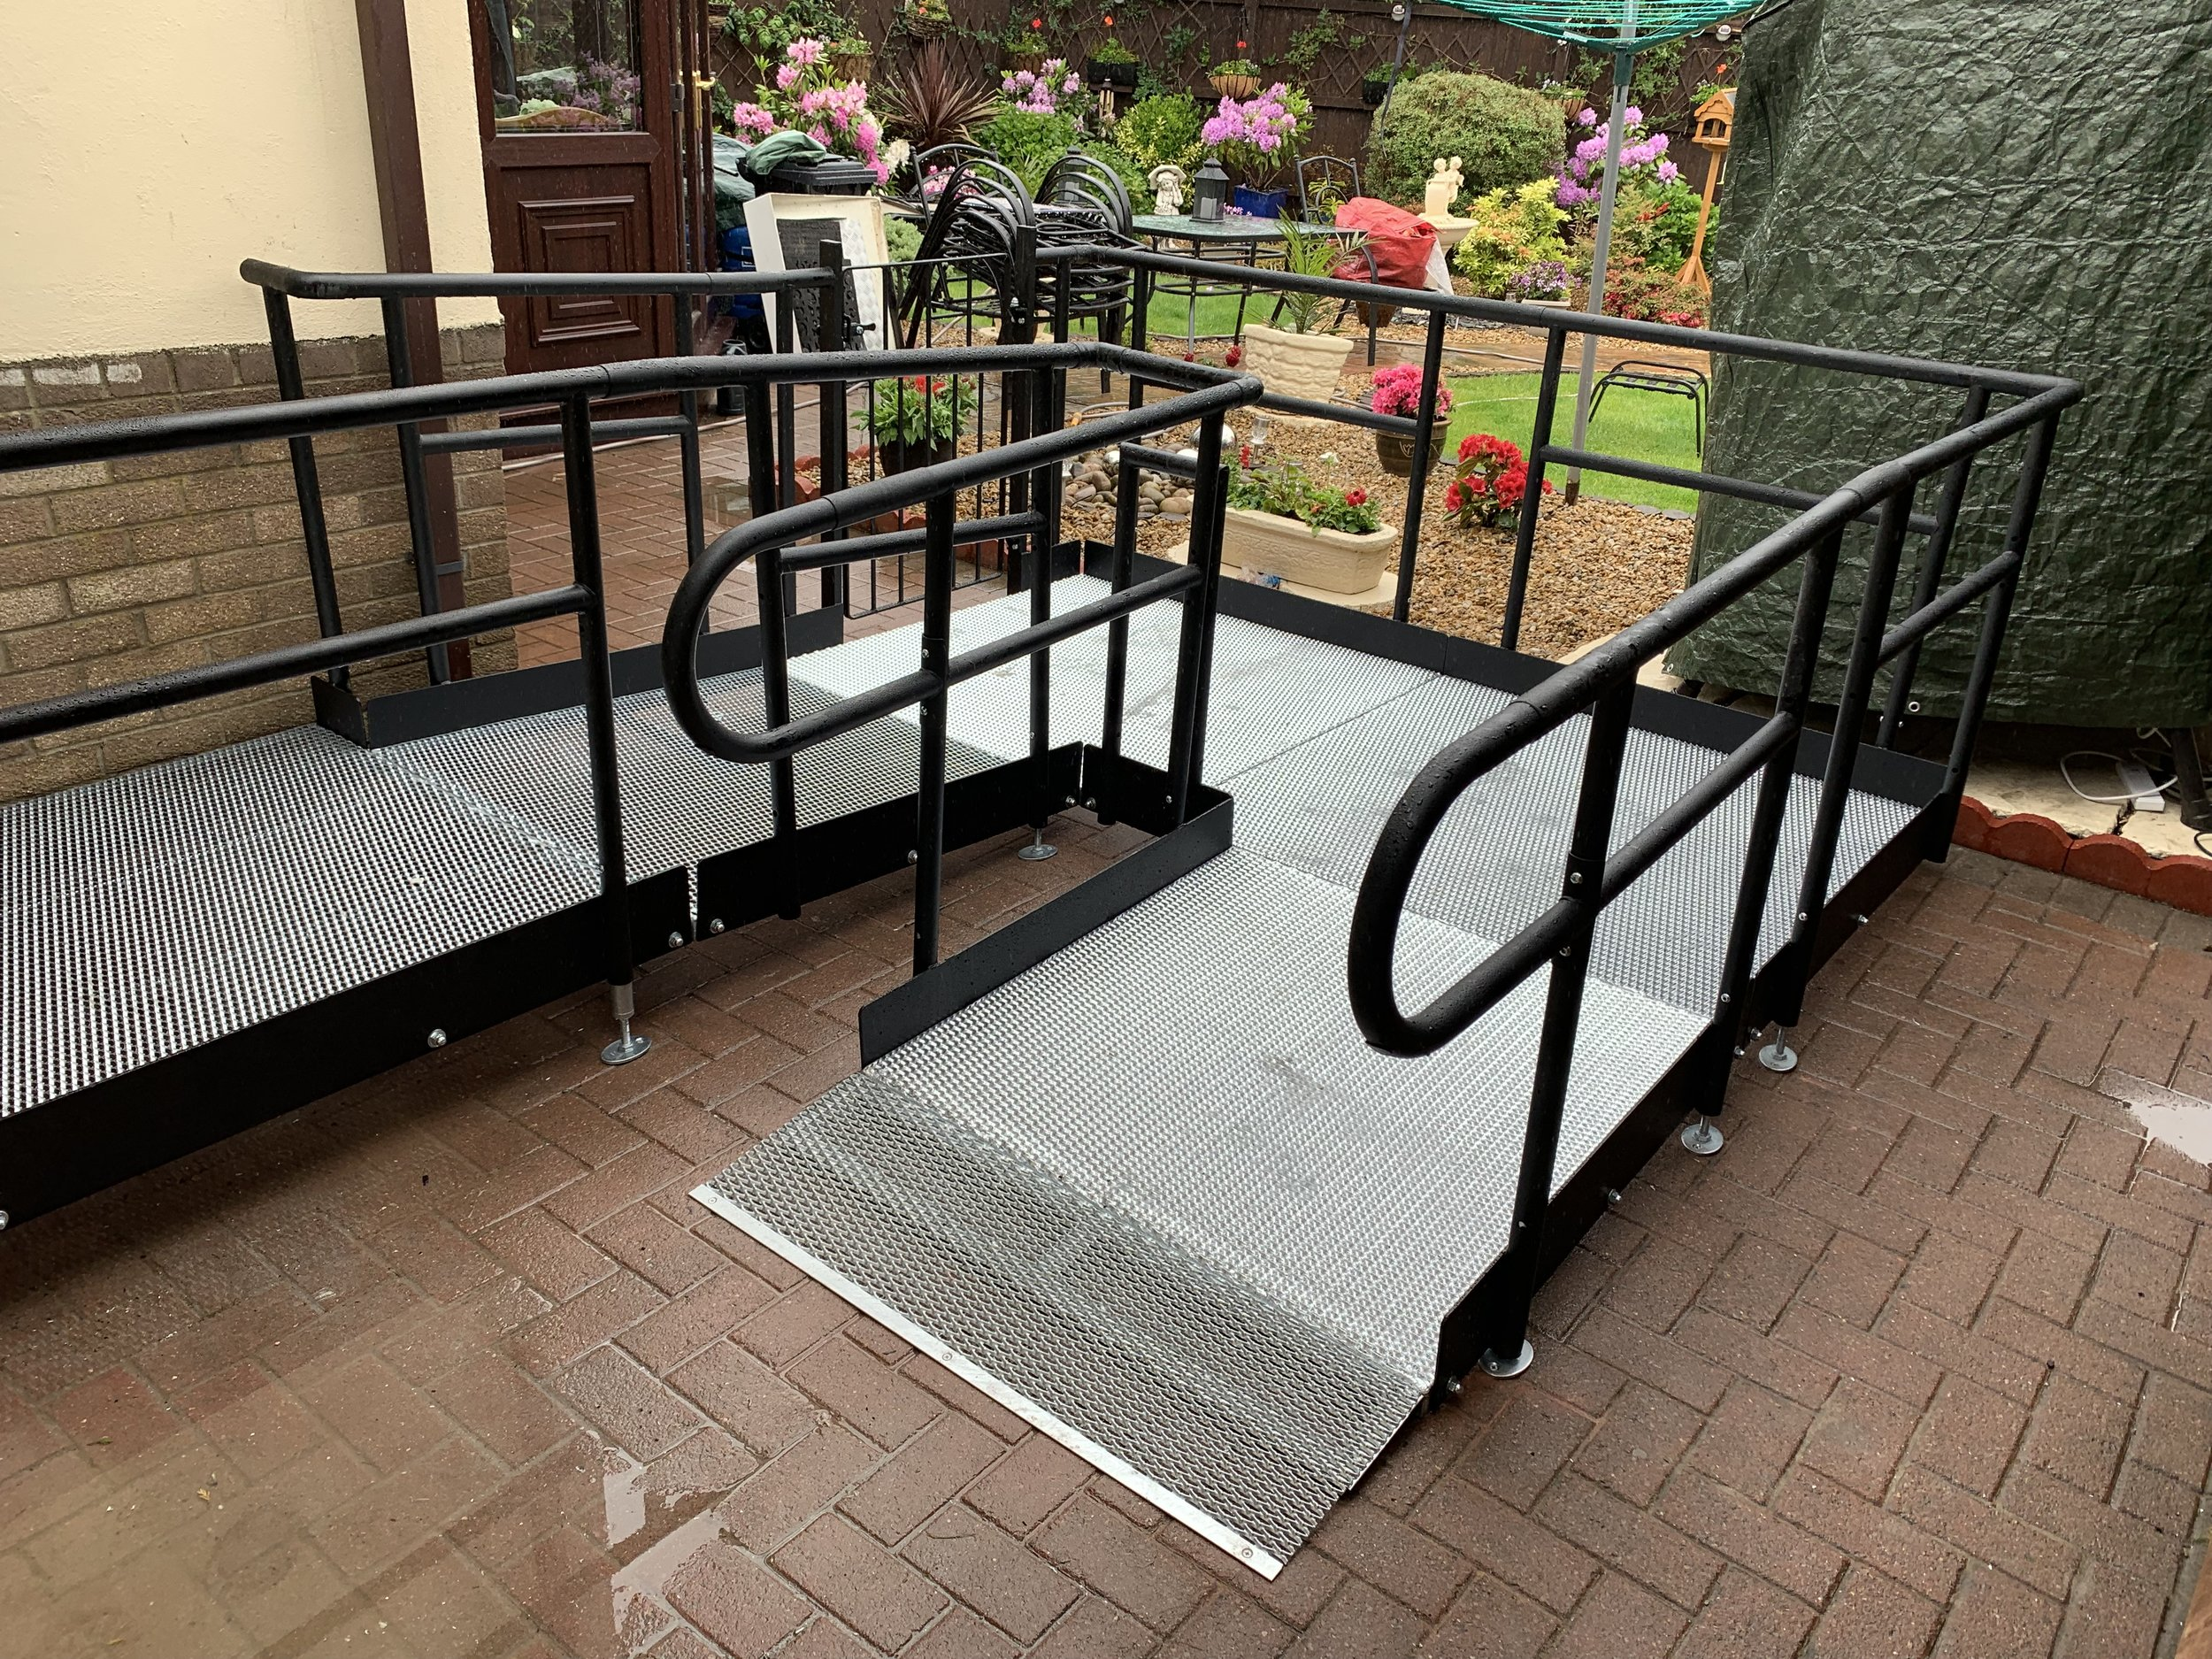 permanent ramps disabled access